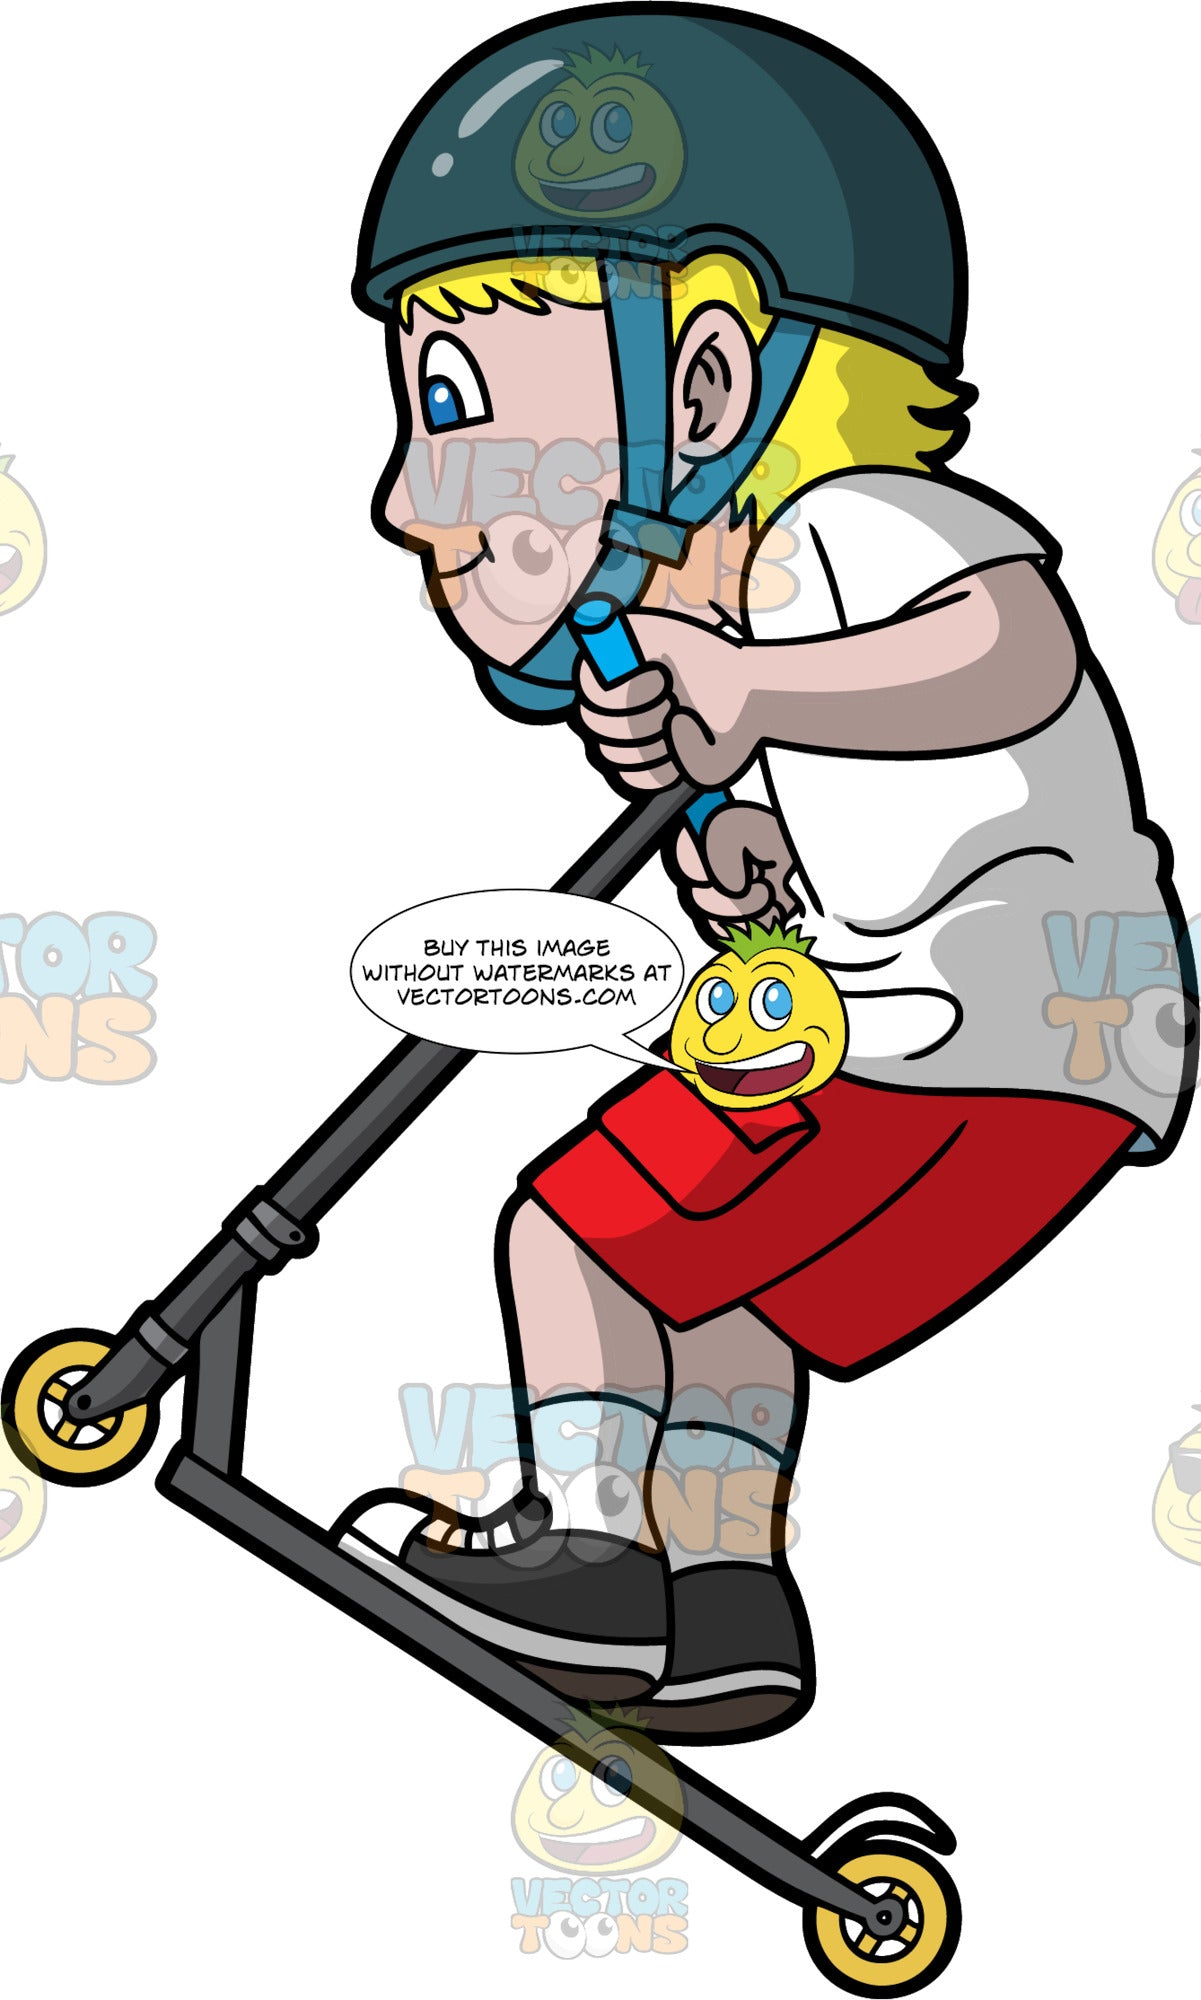 A Man Jumps While Riding A Scooter. A man with blonde hair, wearing a white shirt, red shorts, white socks, black and white shoes, dark teal helmet with chin strap, smirks while jumping with his black scooter that has yellow wheels